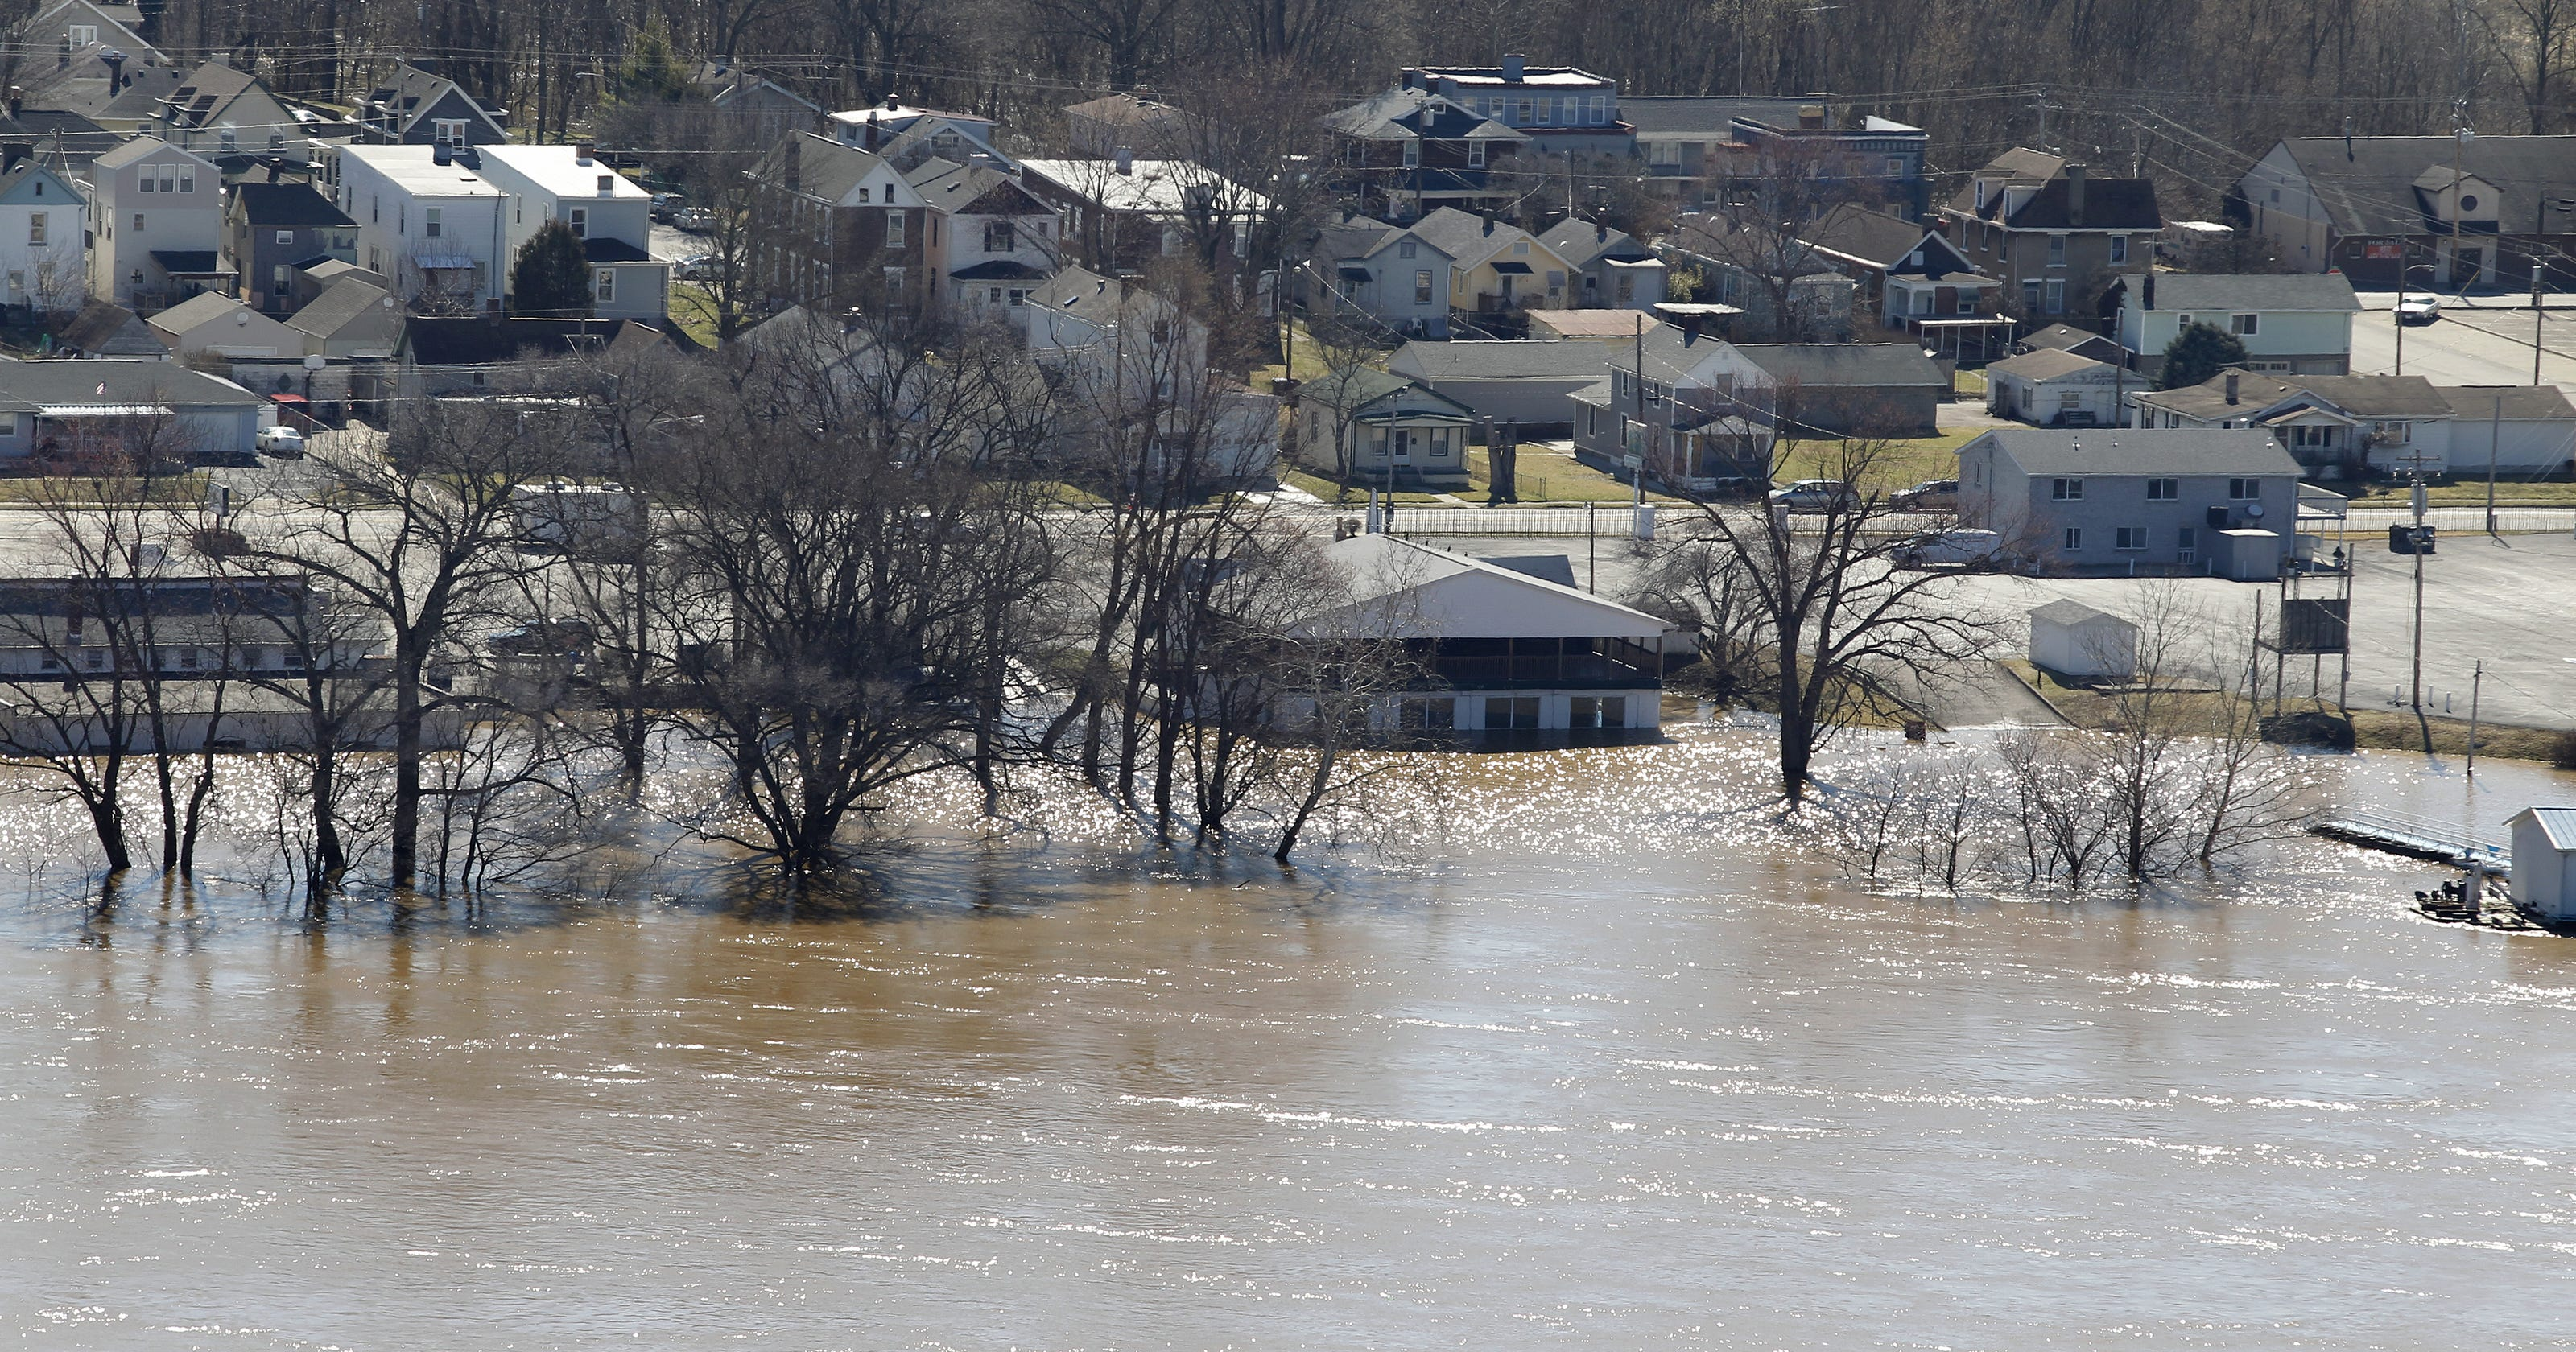 Flood: When will things get back to normal?